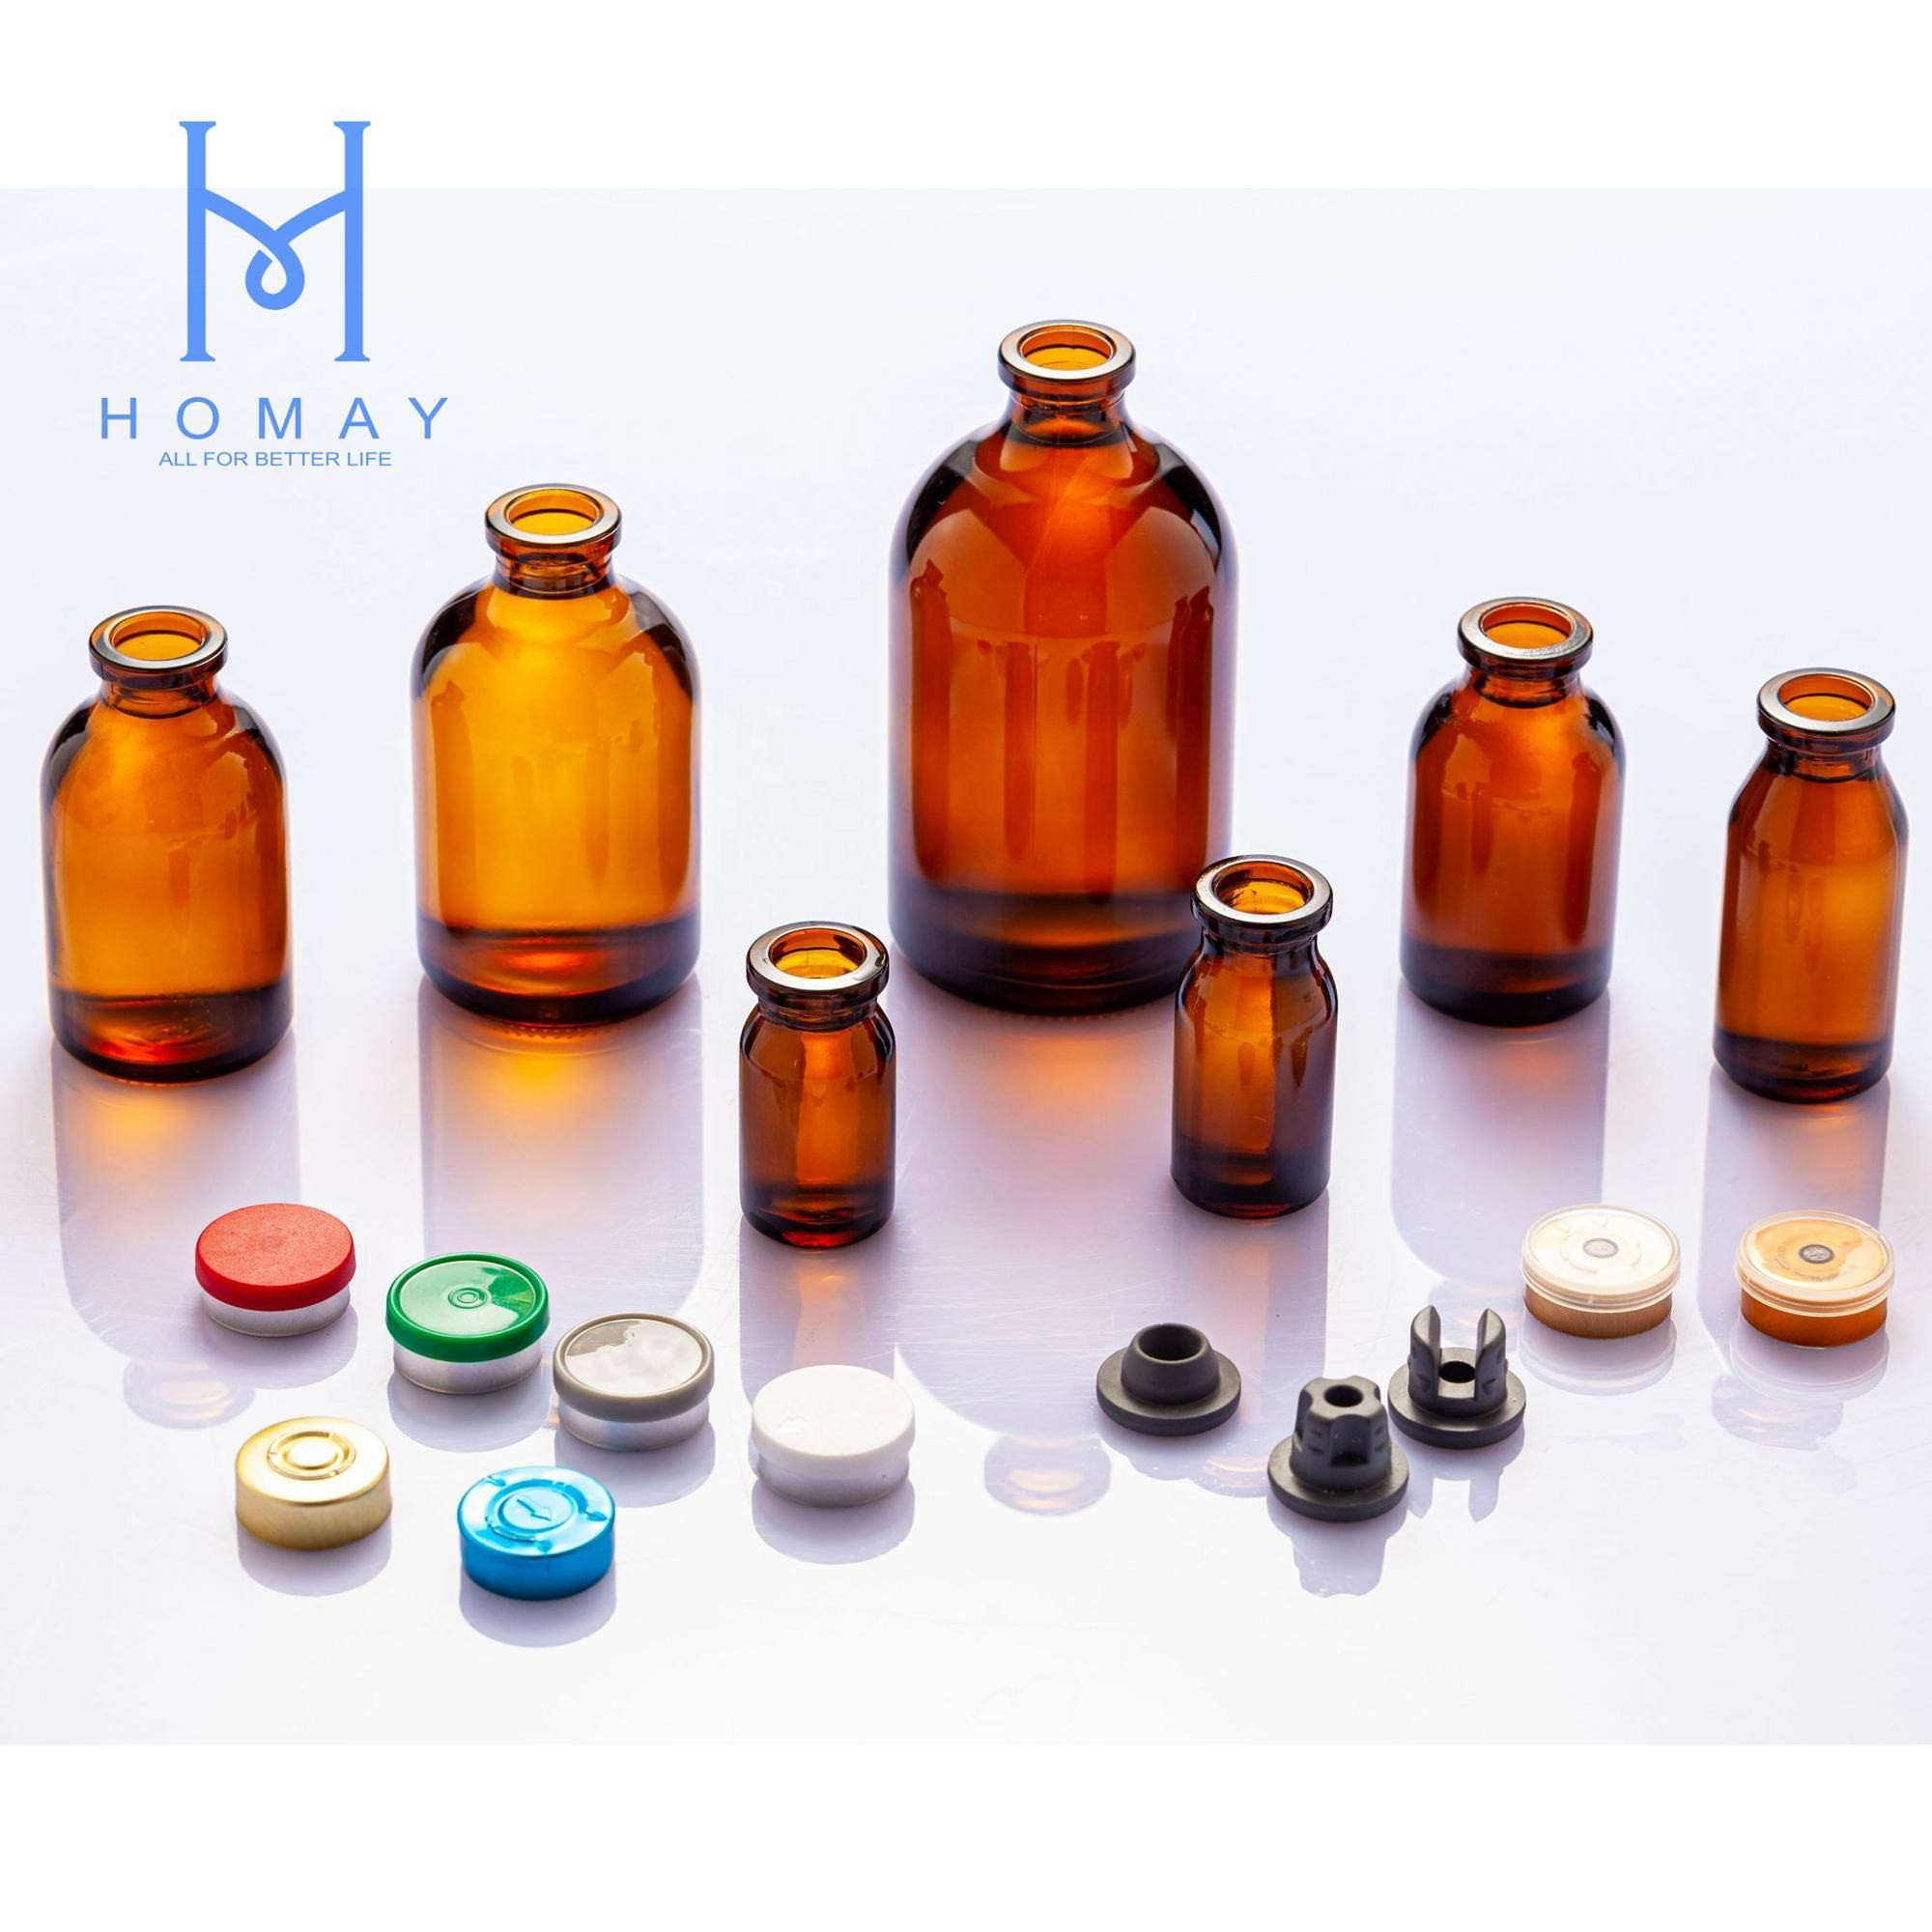 High Quality Amber Clear Molded Glass Vials For Injection USP TYPE I II III 5ml 7ml 8ml 10ml 15ml 20ml 30ml 50ml 100ml